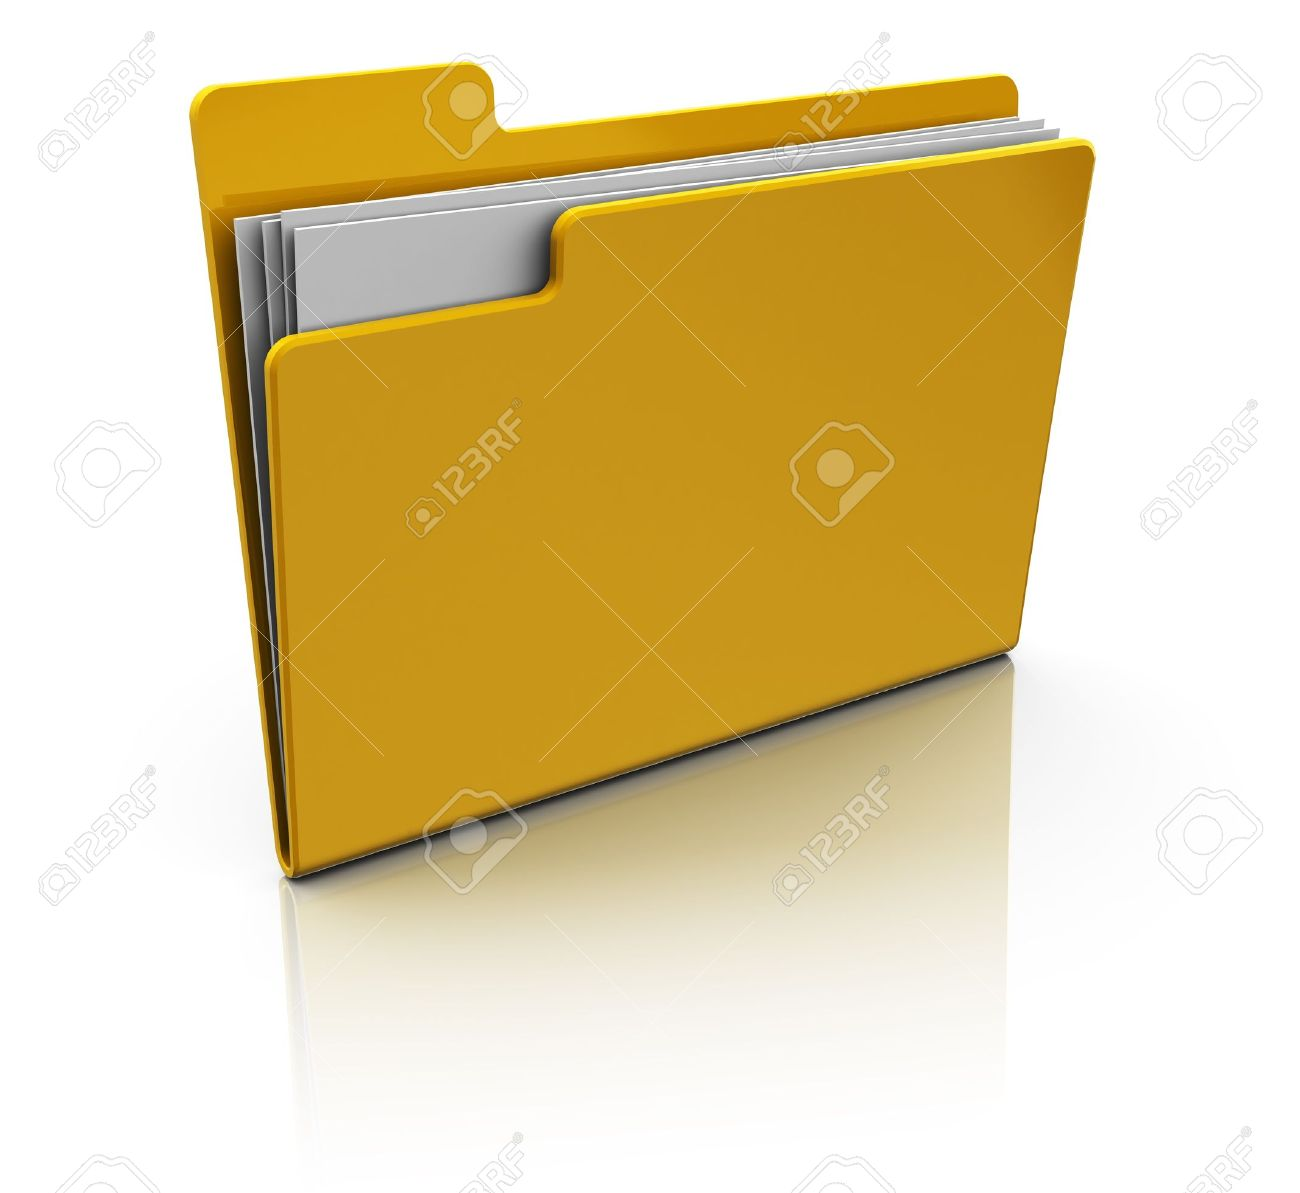 3d illustration  of yellow folder icon over white background Stock Illustration - 9732096